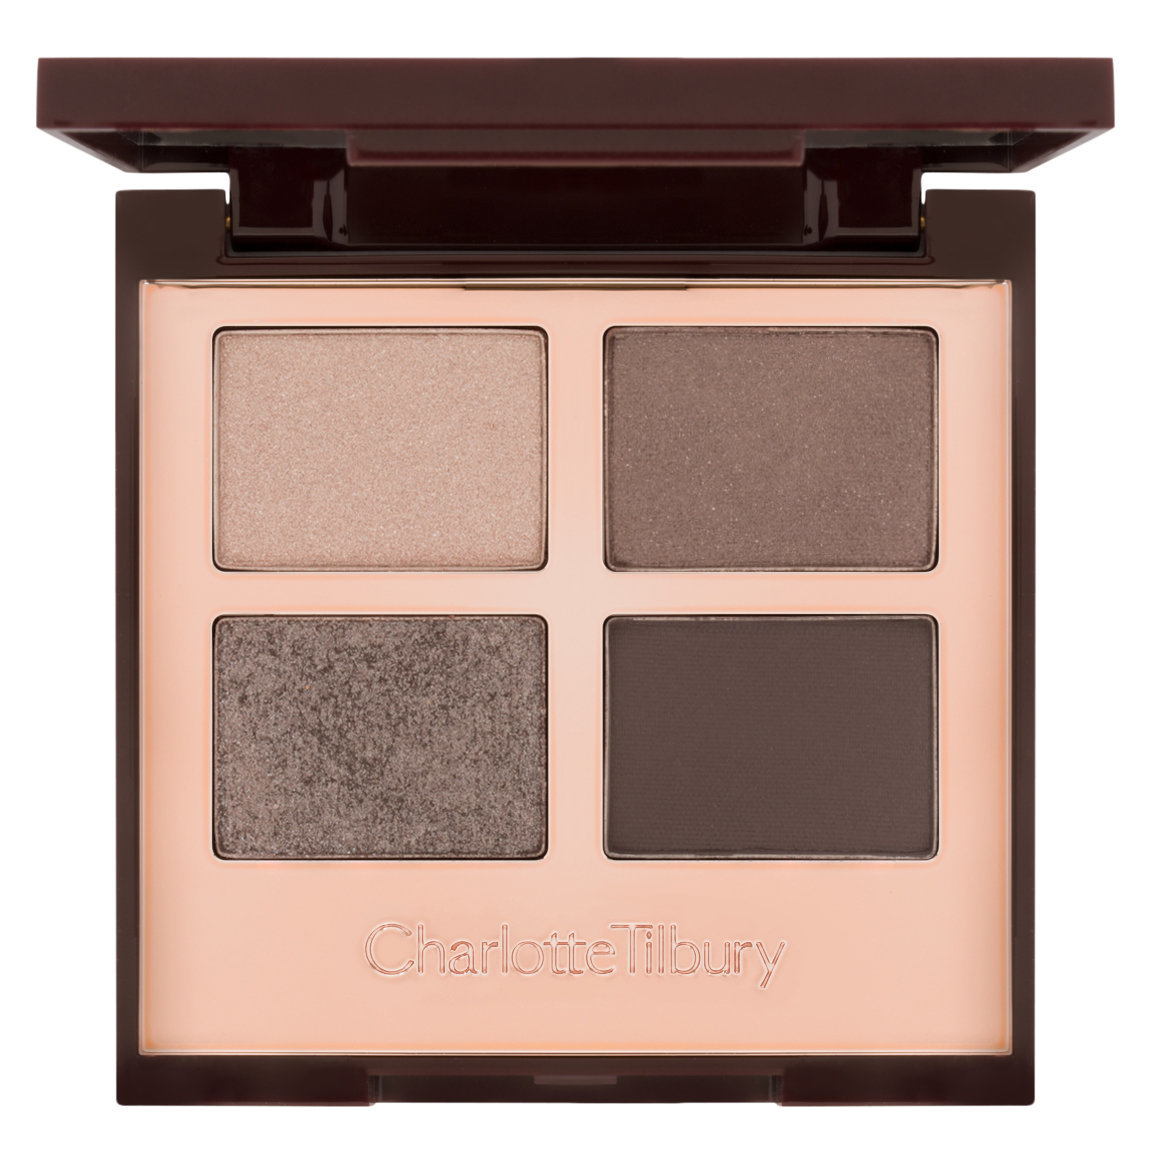 Charlotte Tilbury Luxury Palette The Rock Chick product swatch.